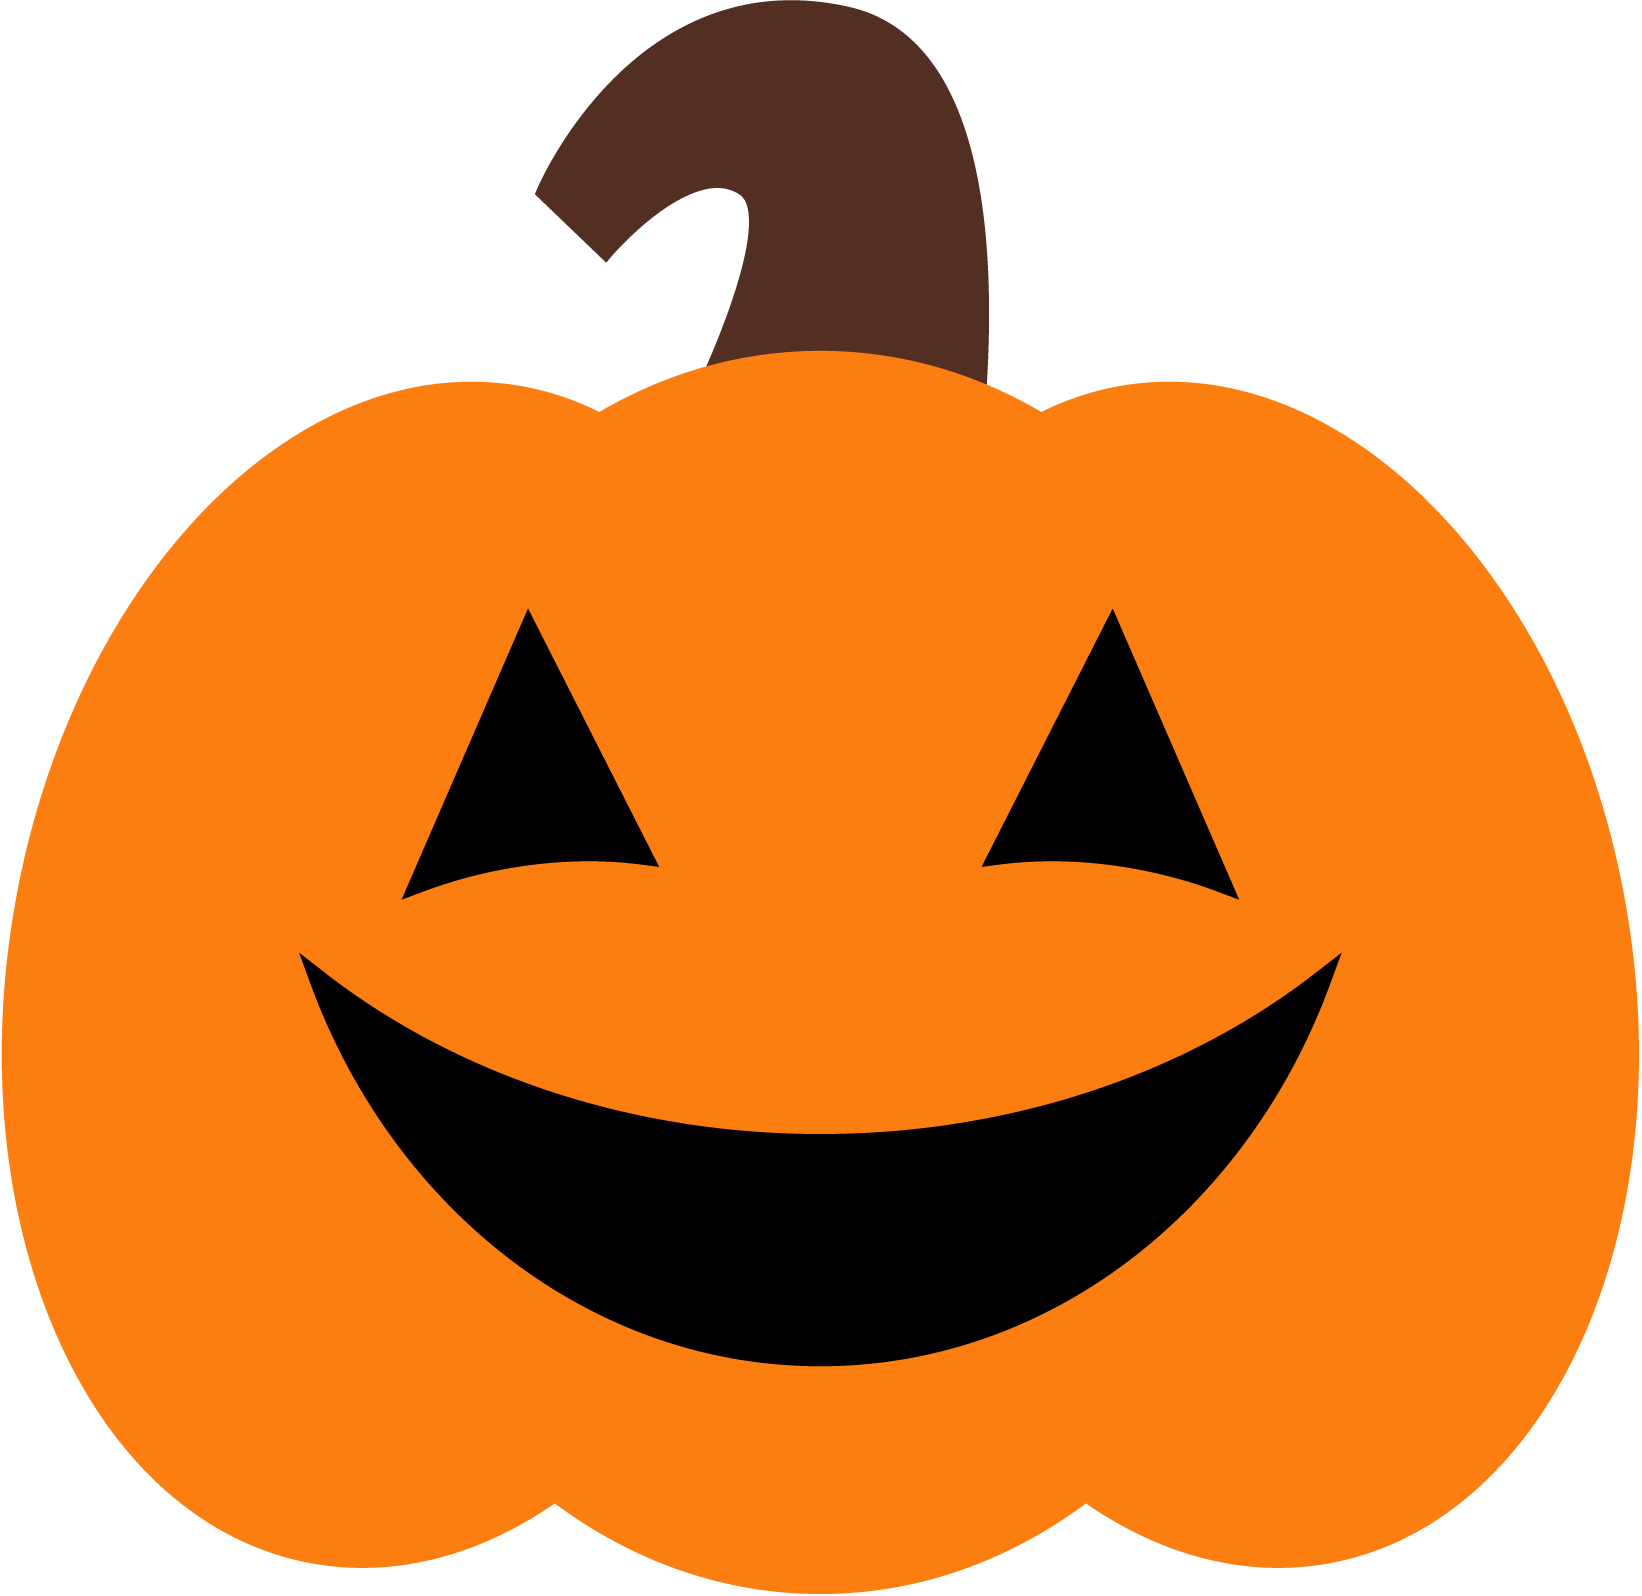 Halloween clipart graphic free Free halloween clipart 3 - Clipartix graphic free